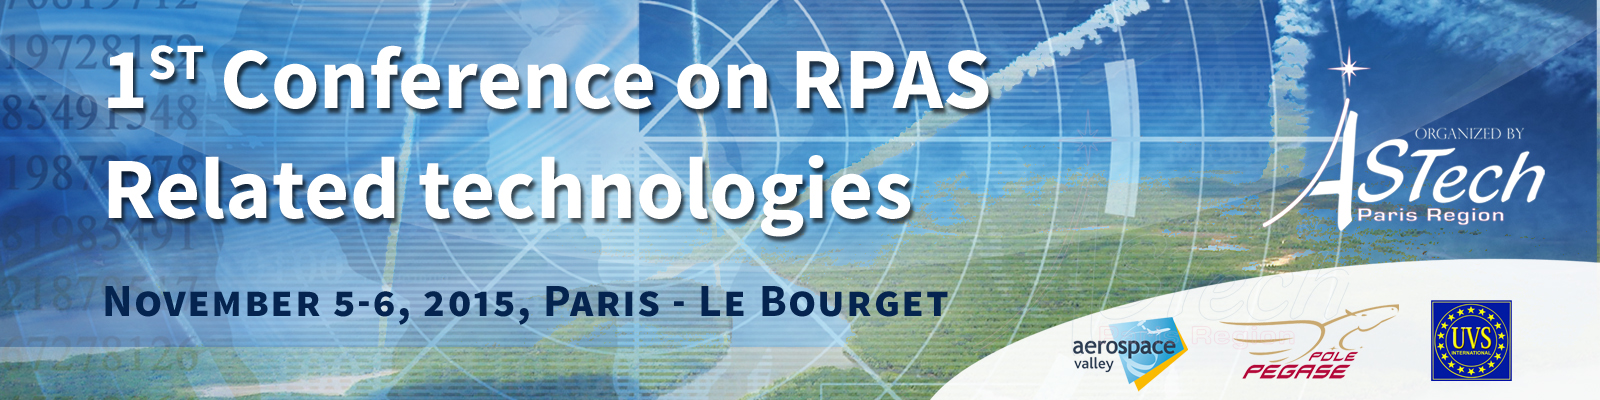 5-6 Nov 2015 – 1st International Conference on RPAS related Technologies – Paris Le Bourget